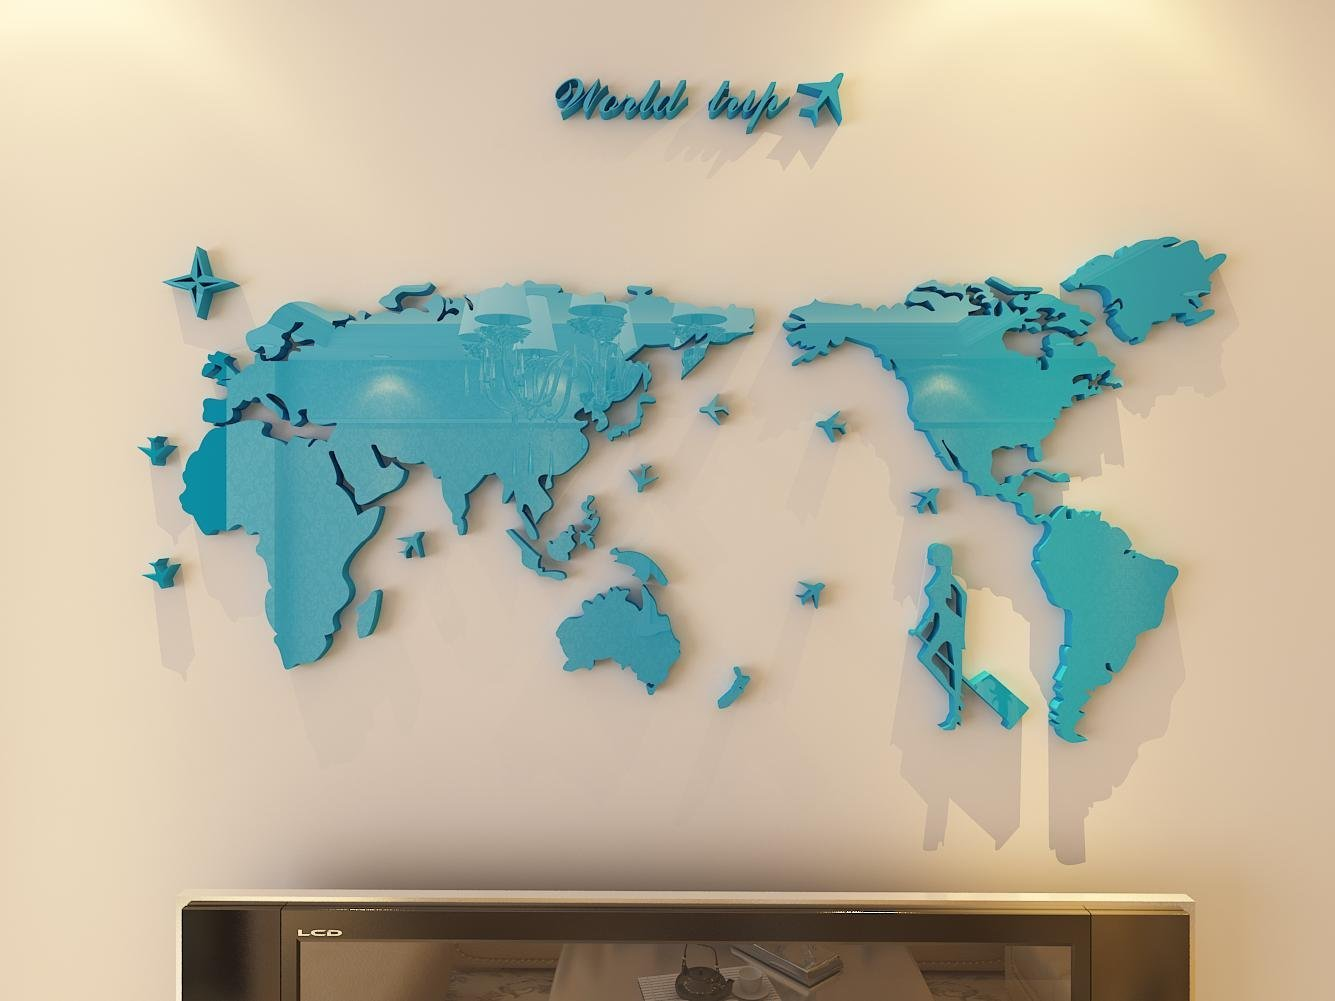 Plastic The World Trip Map Wall Stickers/Wall decals/Wall tattoos/Wall transfers (21(H) x 35(W) inches, Blue)